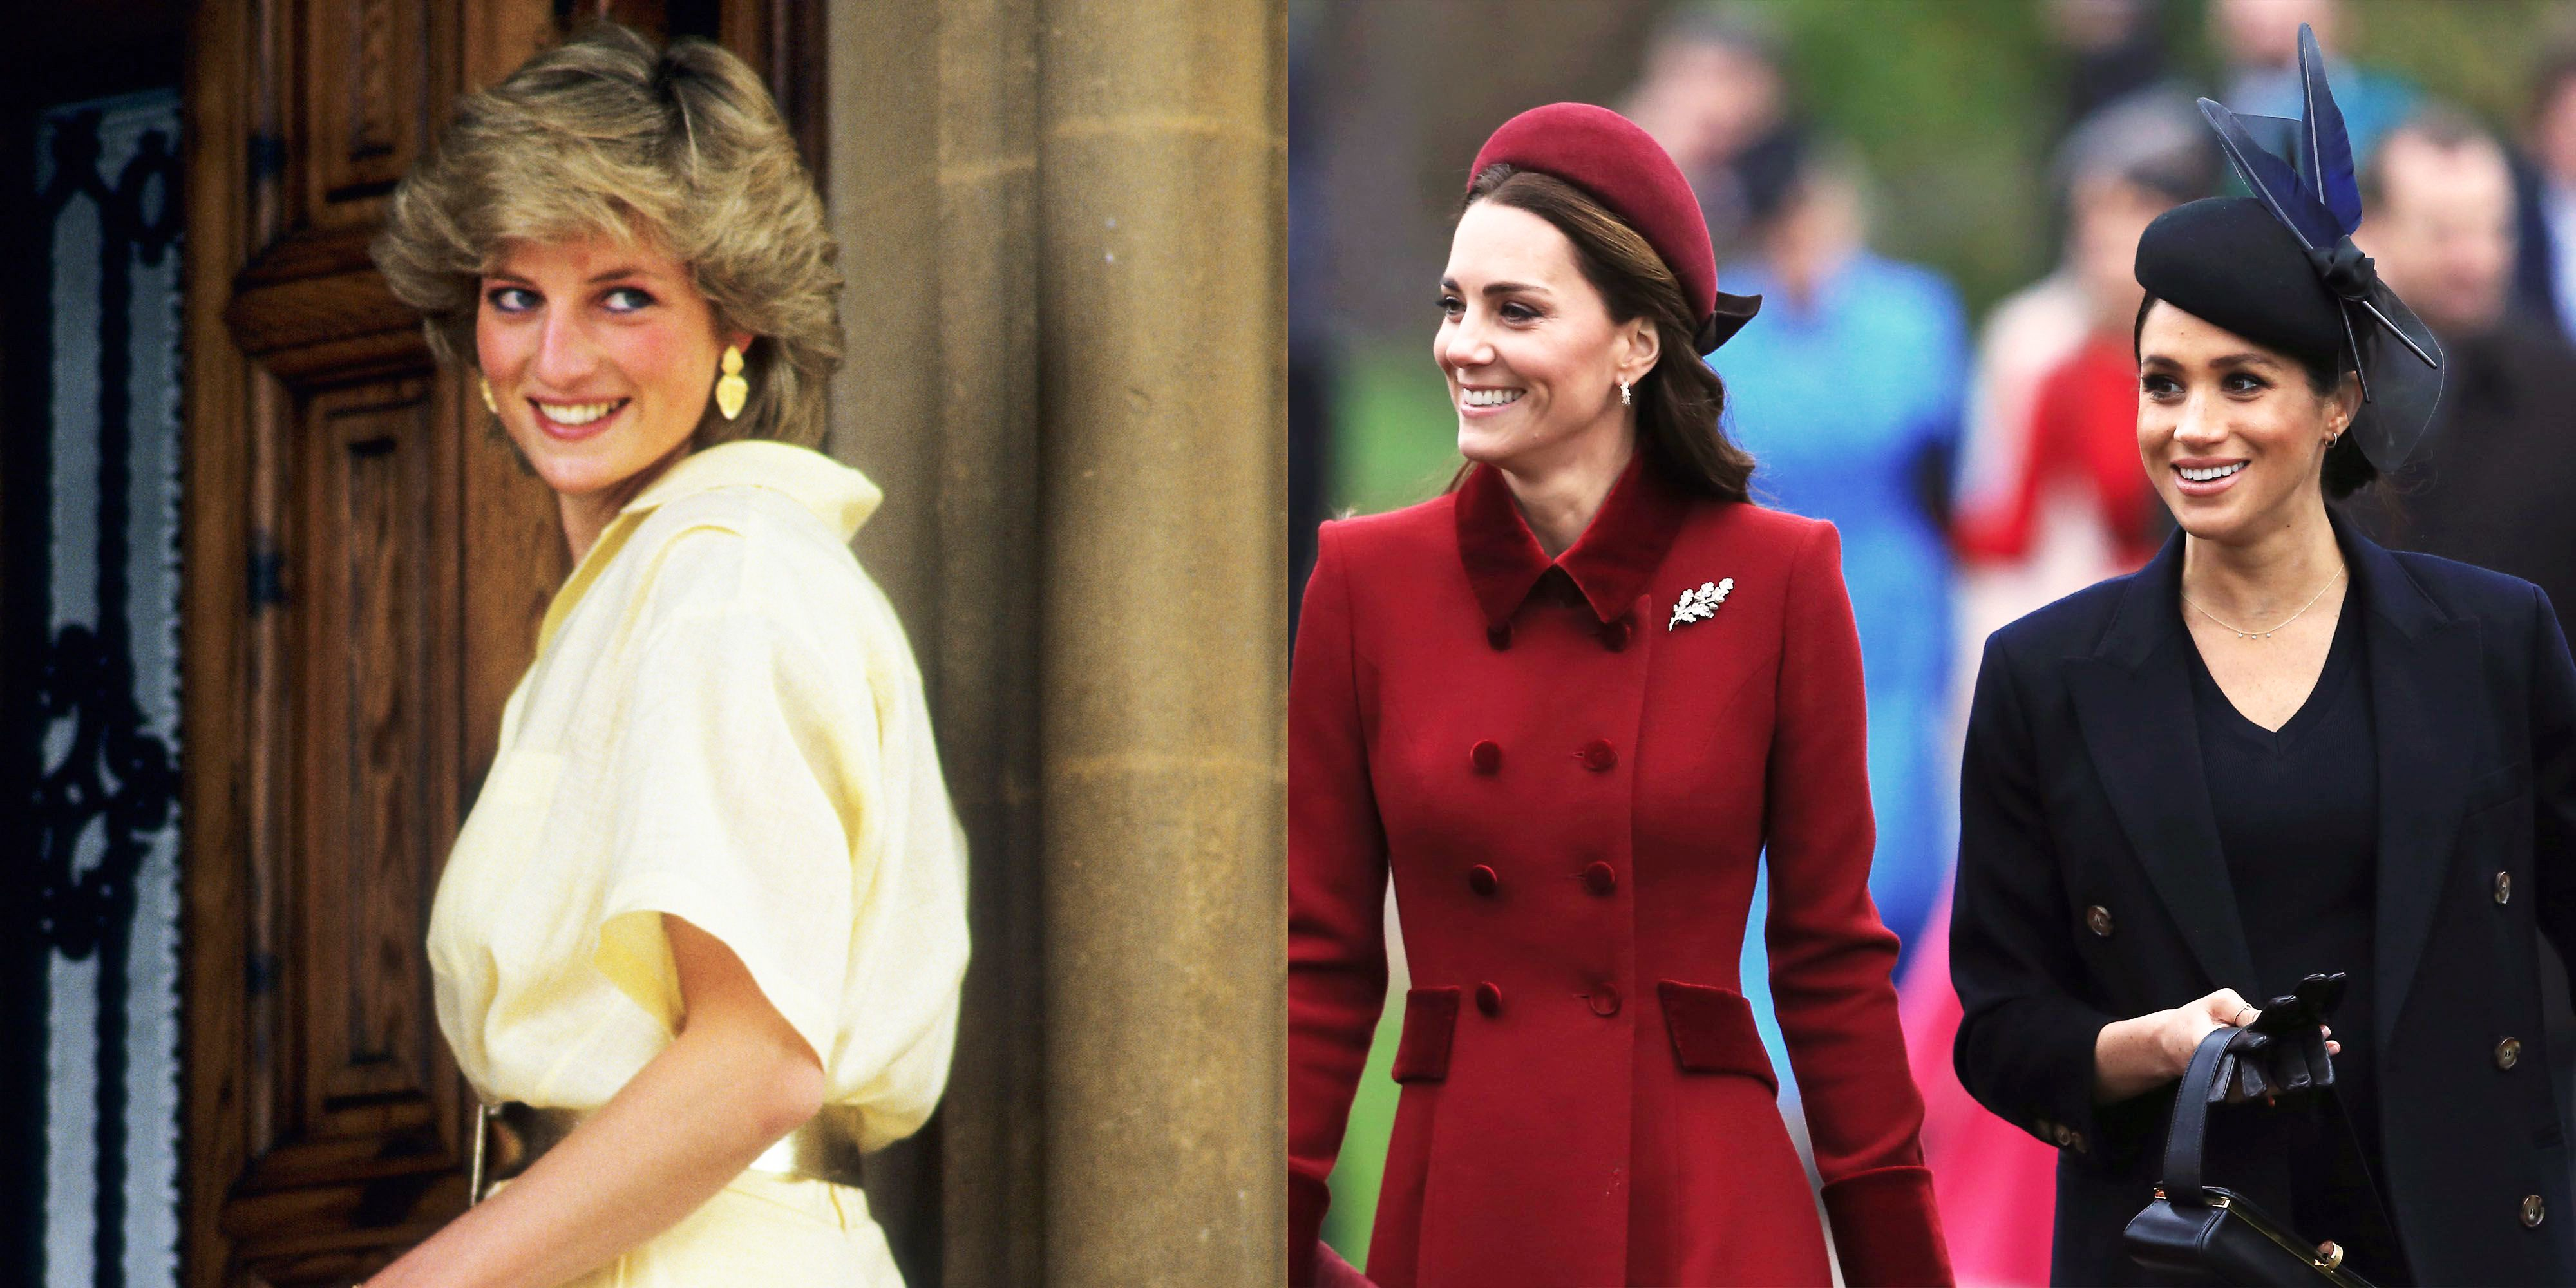 13+ Princess Diana Vs Meghan Markle